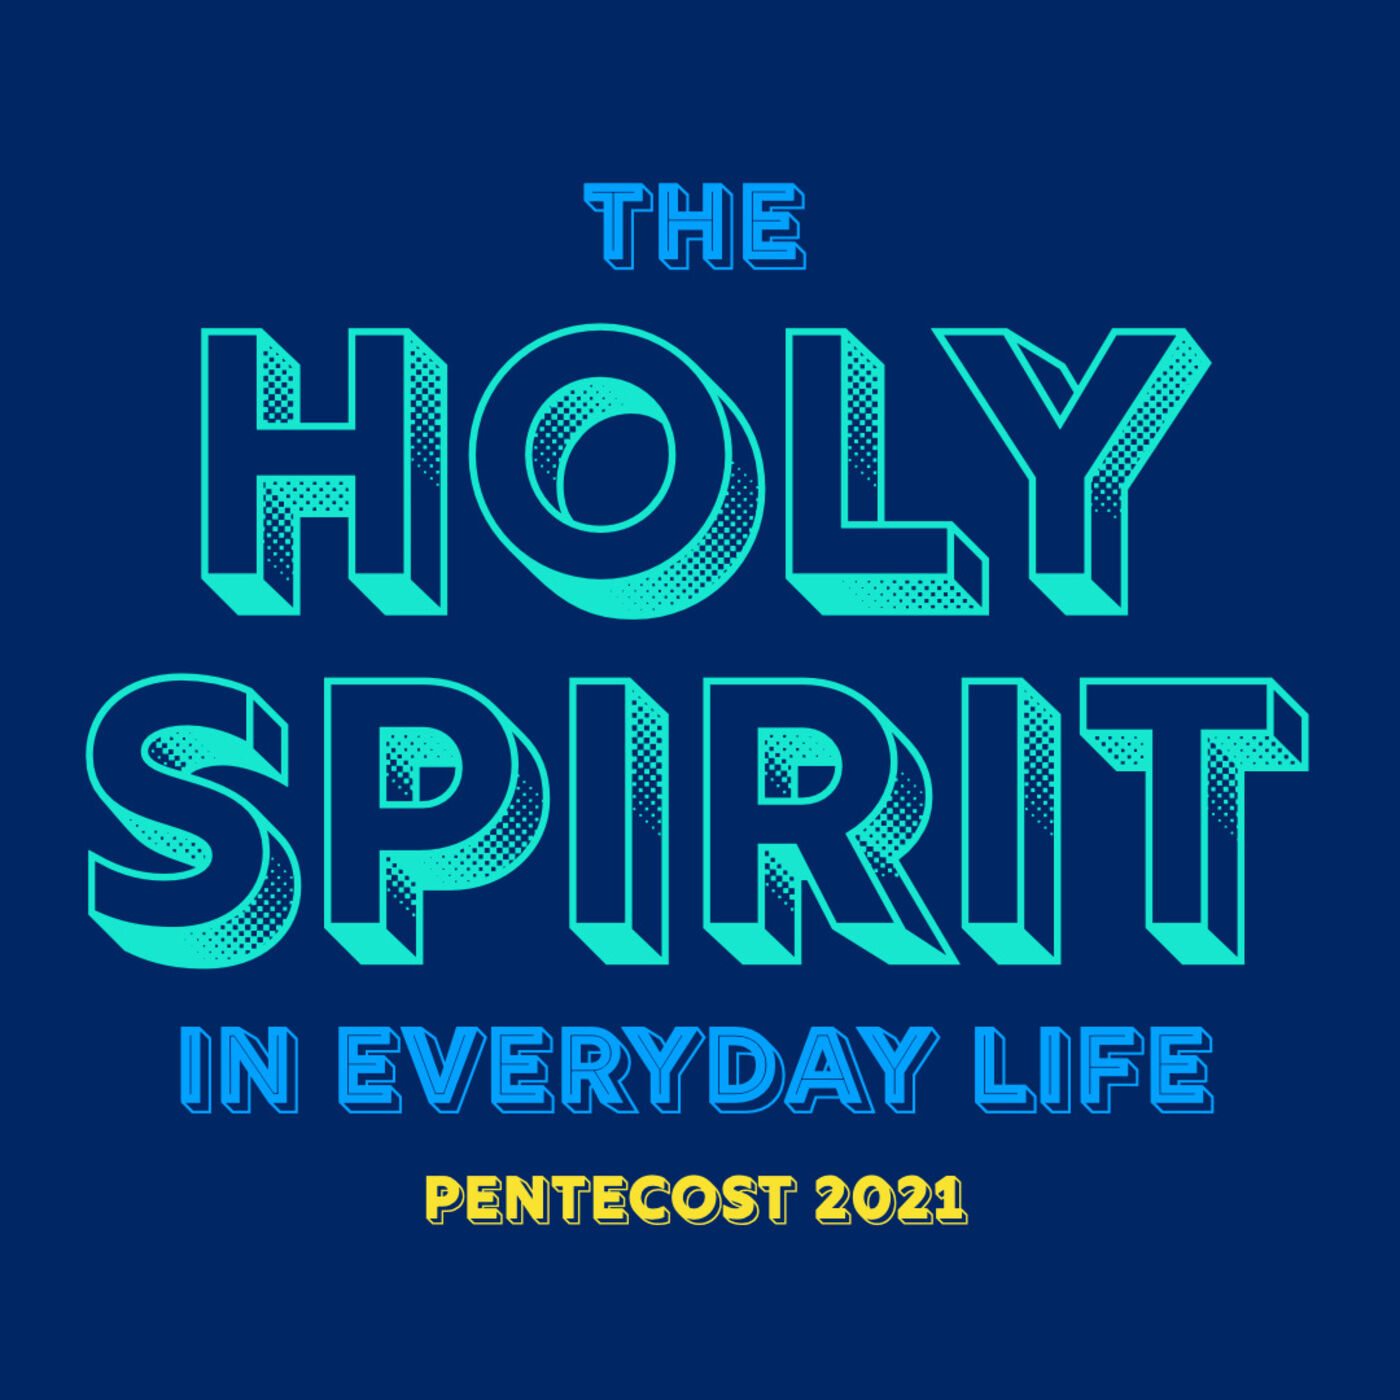 The Holy Spirit in Everyday Life | Acts 2:1-41 » May 30, 2021